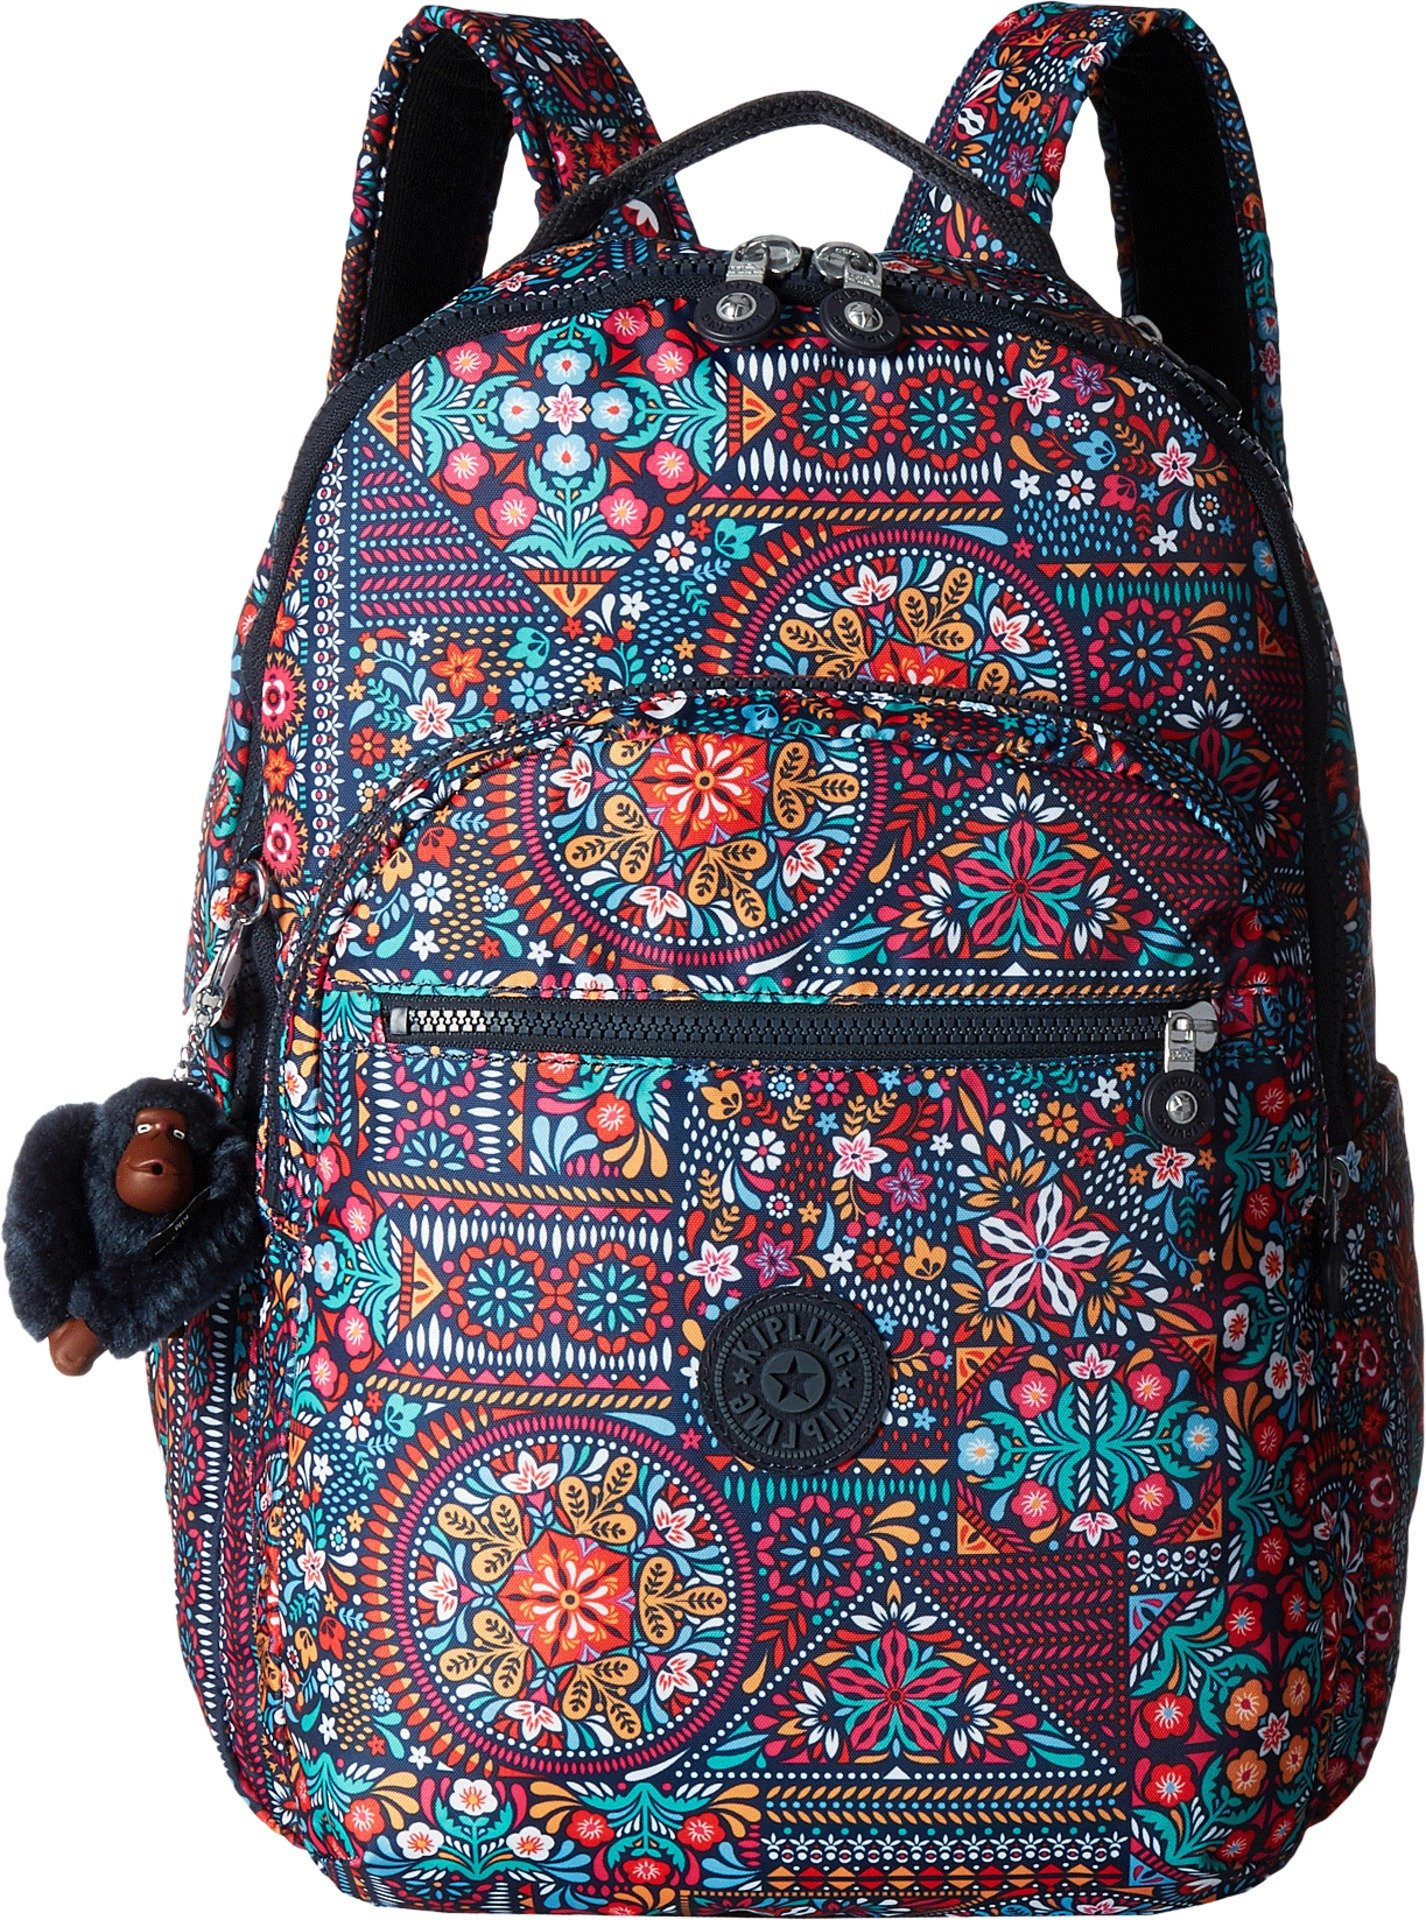 Seoul L Printed Laptop Backpack Backpack, DZDRLNGMLT, One Size